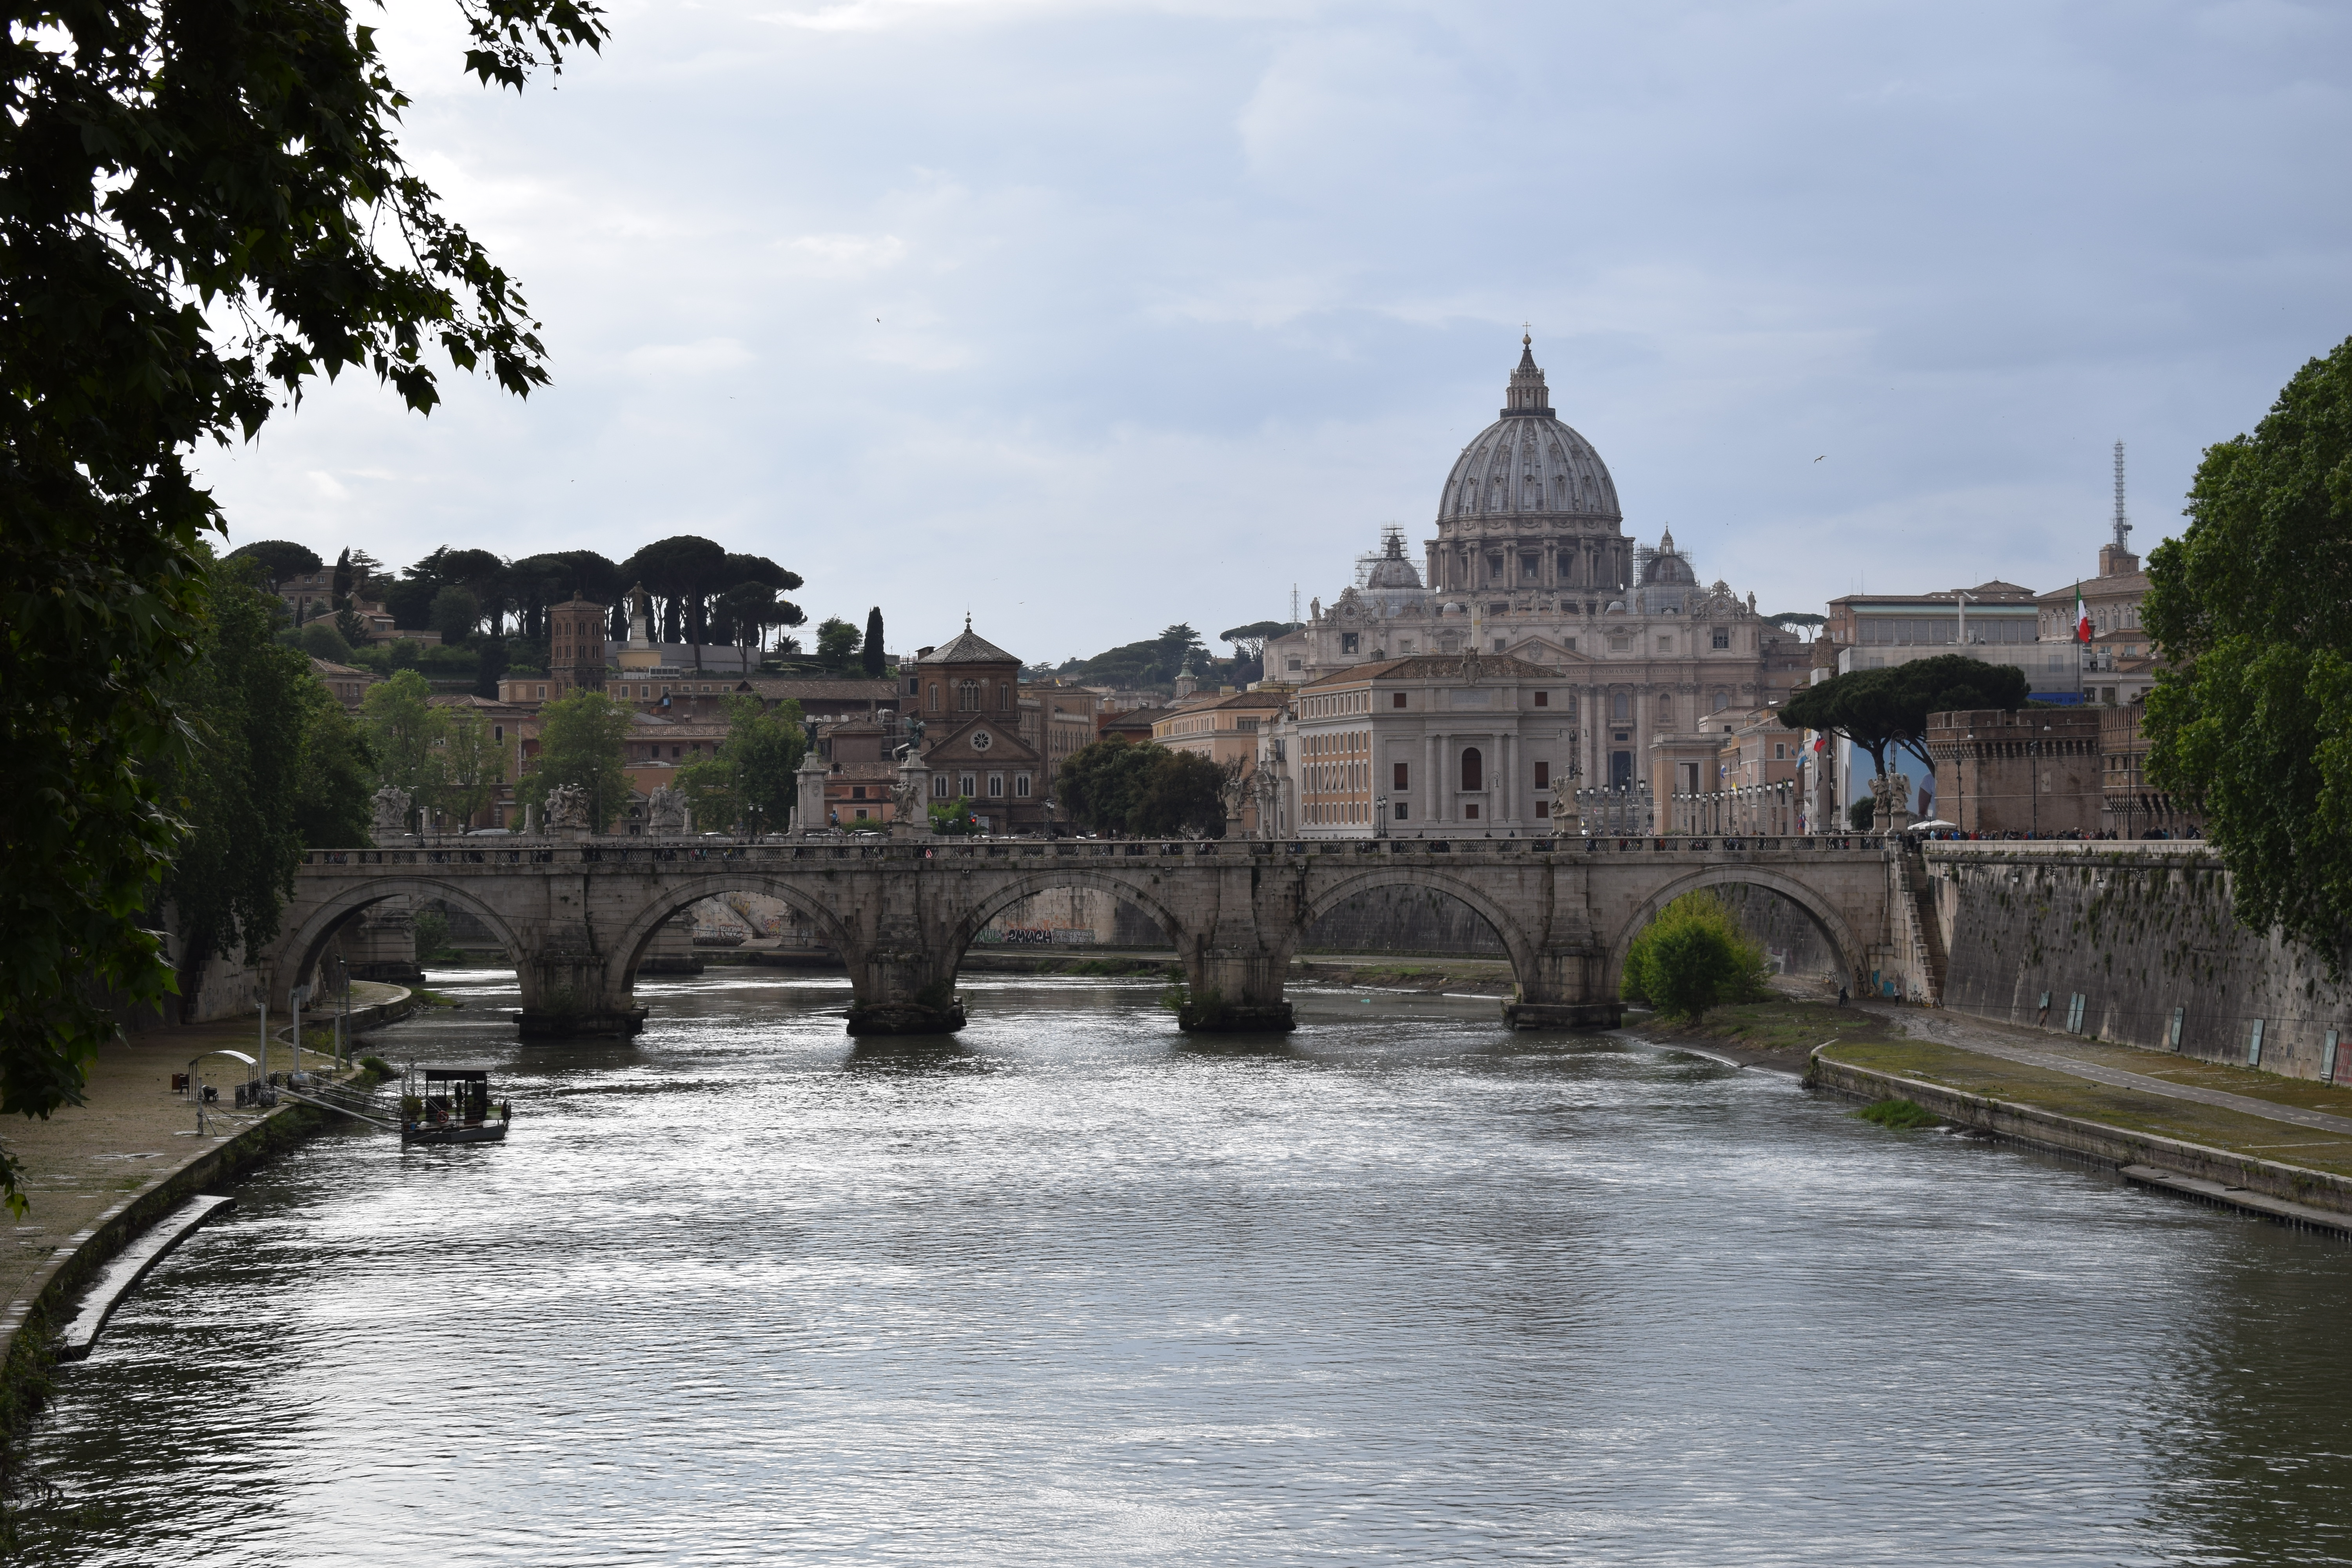 View of St. Peter's Basilica from Tiber River Rome Italy